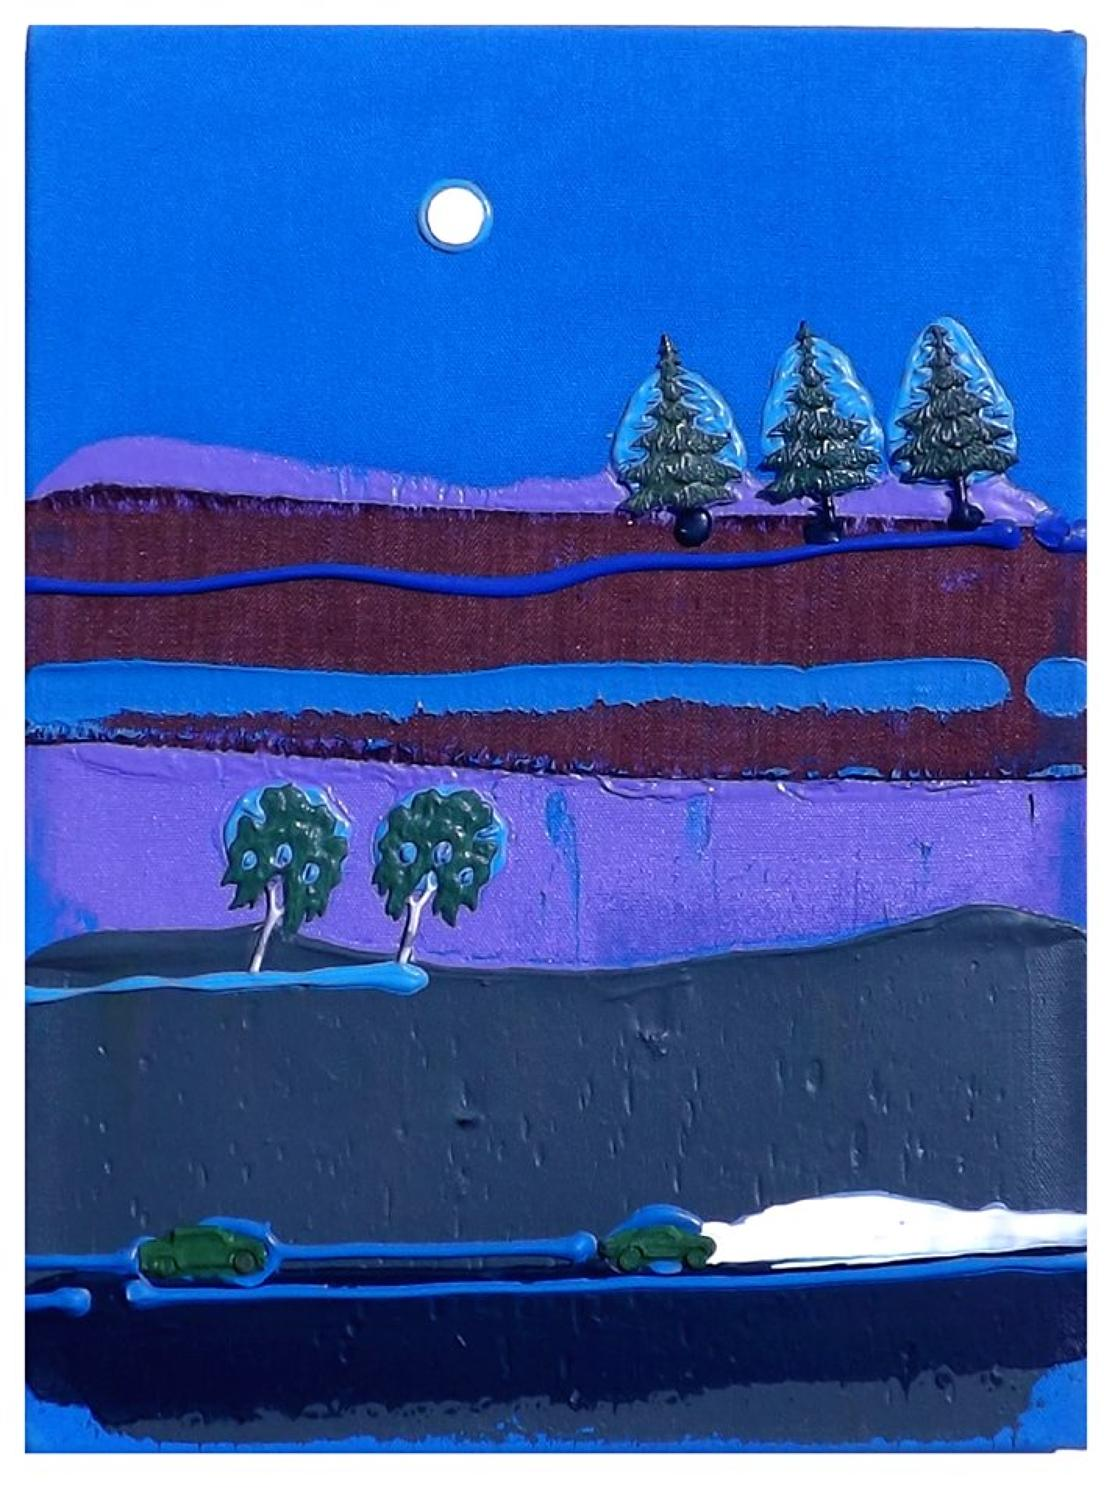 Jamiie Andrews. Moonlit Night 2.